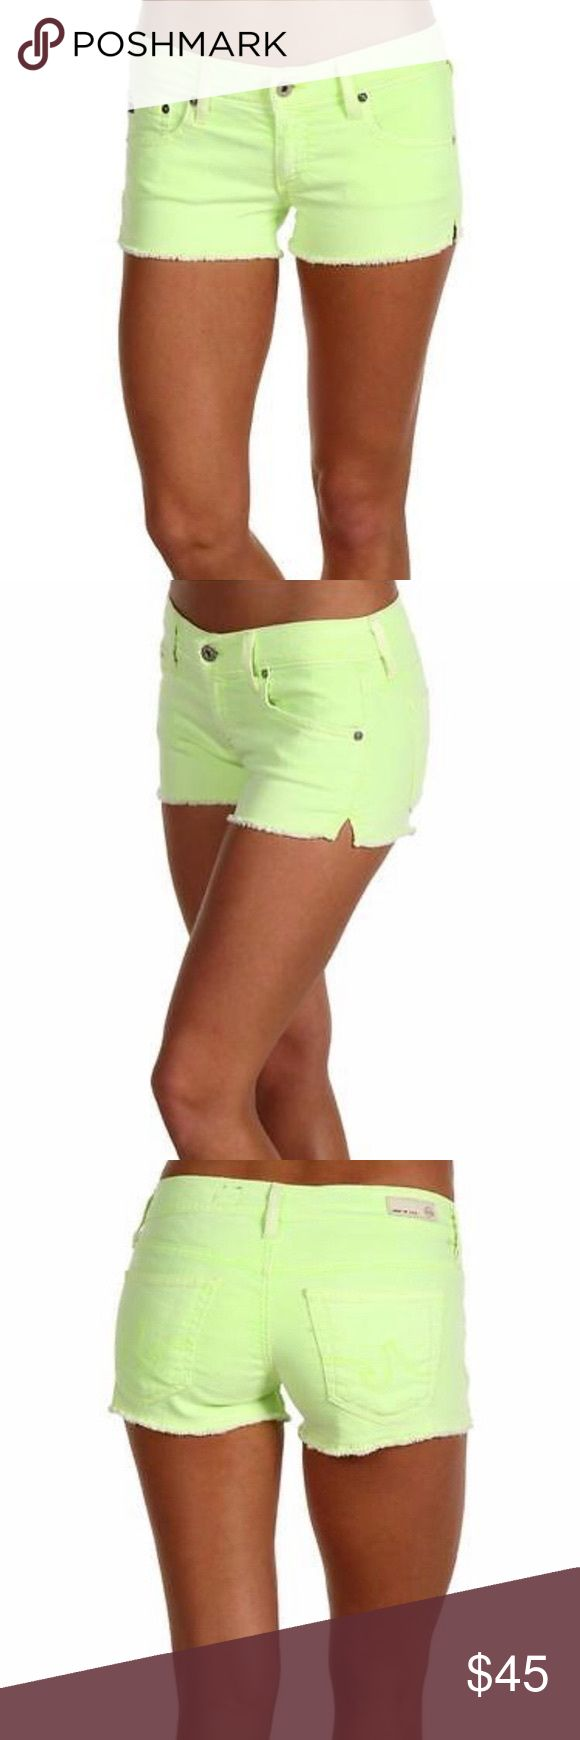 "AG Jeans 'The Daisy' Neon Green Shorts The Daisy Super Low-Rise Shorts in Neon Melon by AG Jeans. Size 26. Really cute neon green cut offs, perfect for summer! Super soft denim with a lot of stretch!  Material: 55% cotton; 42% Tencel; 3% PU. - Rise: 7.25"" **tiny spot on back left pocket- see photos- will likely come out, I can try to do it before sending if needed. Ag Adriano Goldschmied Shorts Jean Shorts"